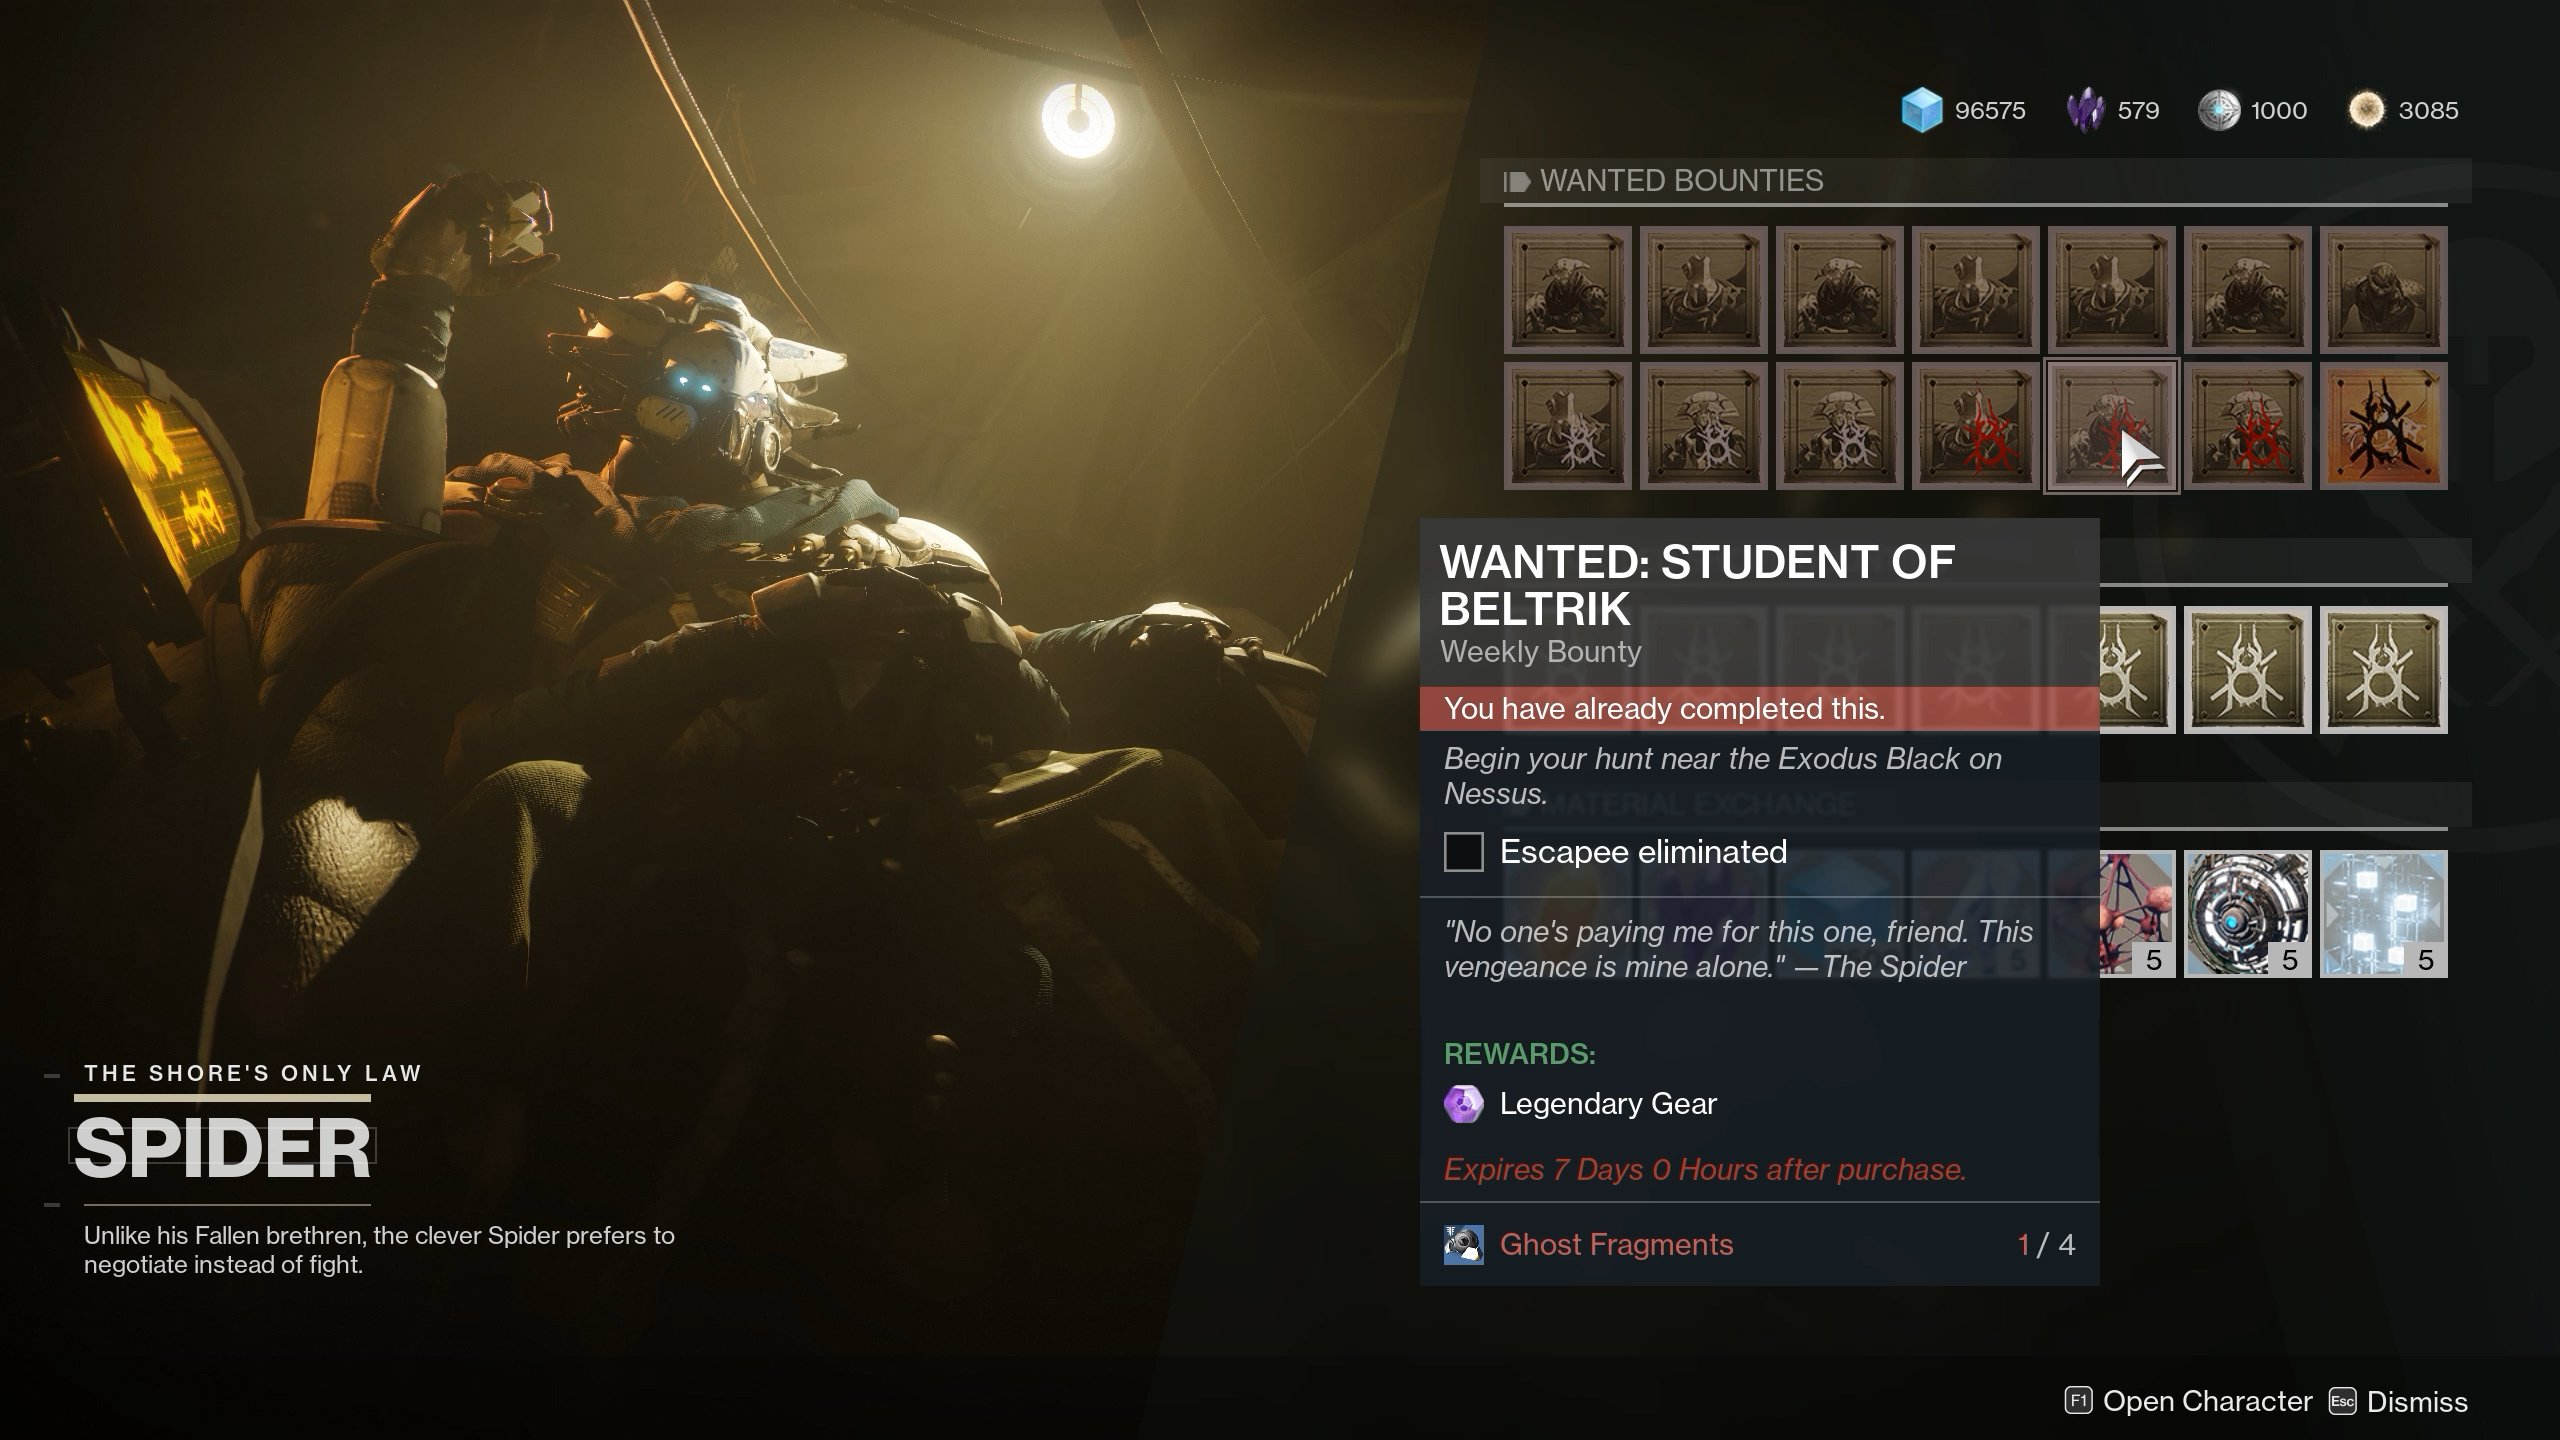 The Wanted Bounty for Student of Beltrik